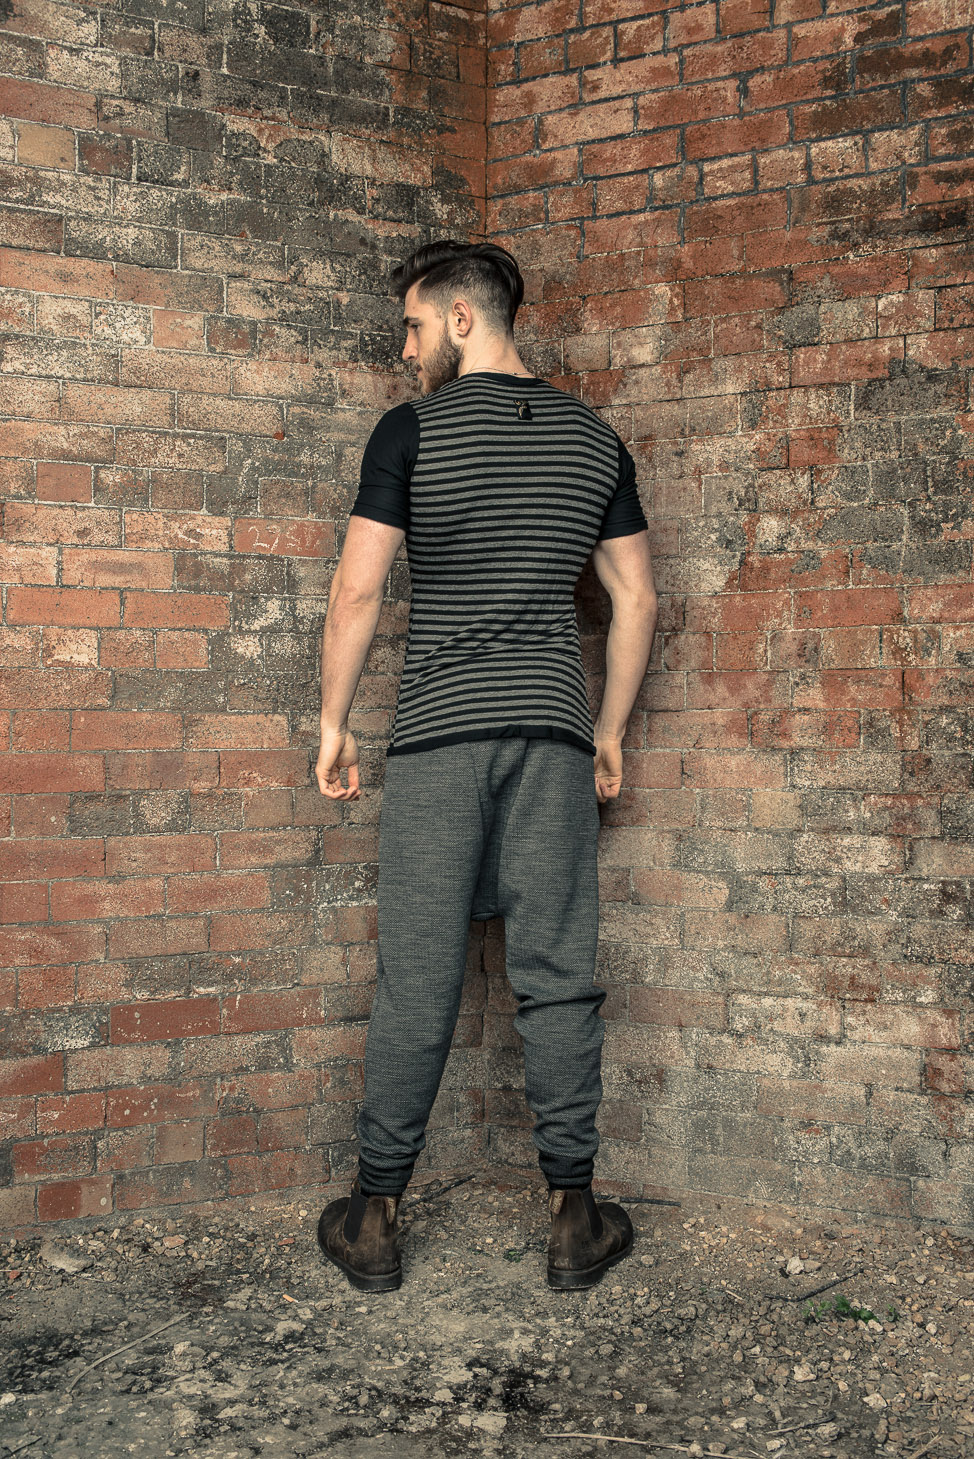 zaramia-ava-zaramiaava-leeds-fashion-designer-ethical-sustainable-tailored-minimalist-fitted-versatile-drape-koji-grey-tshirt-top-hareem-trousers-black-grey-texture-styling-menswear-model-26